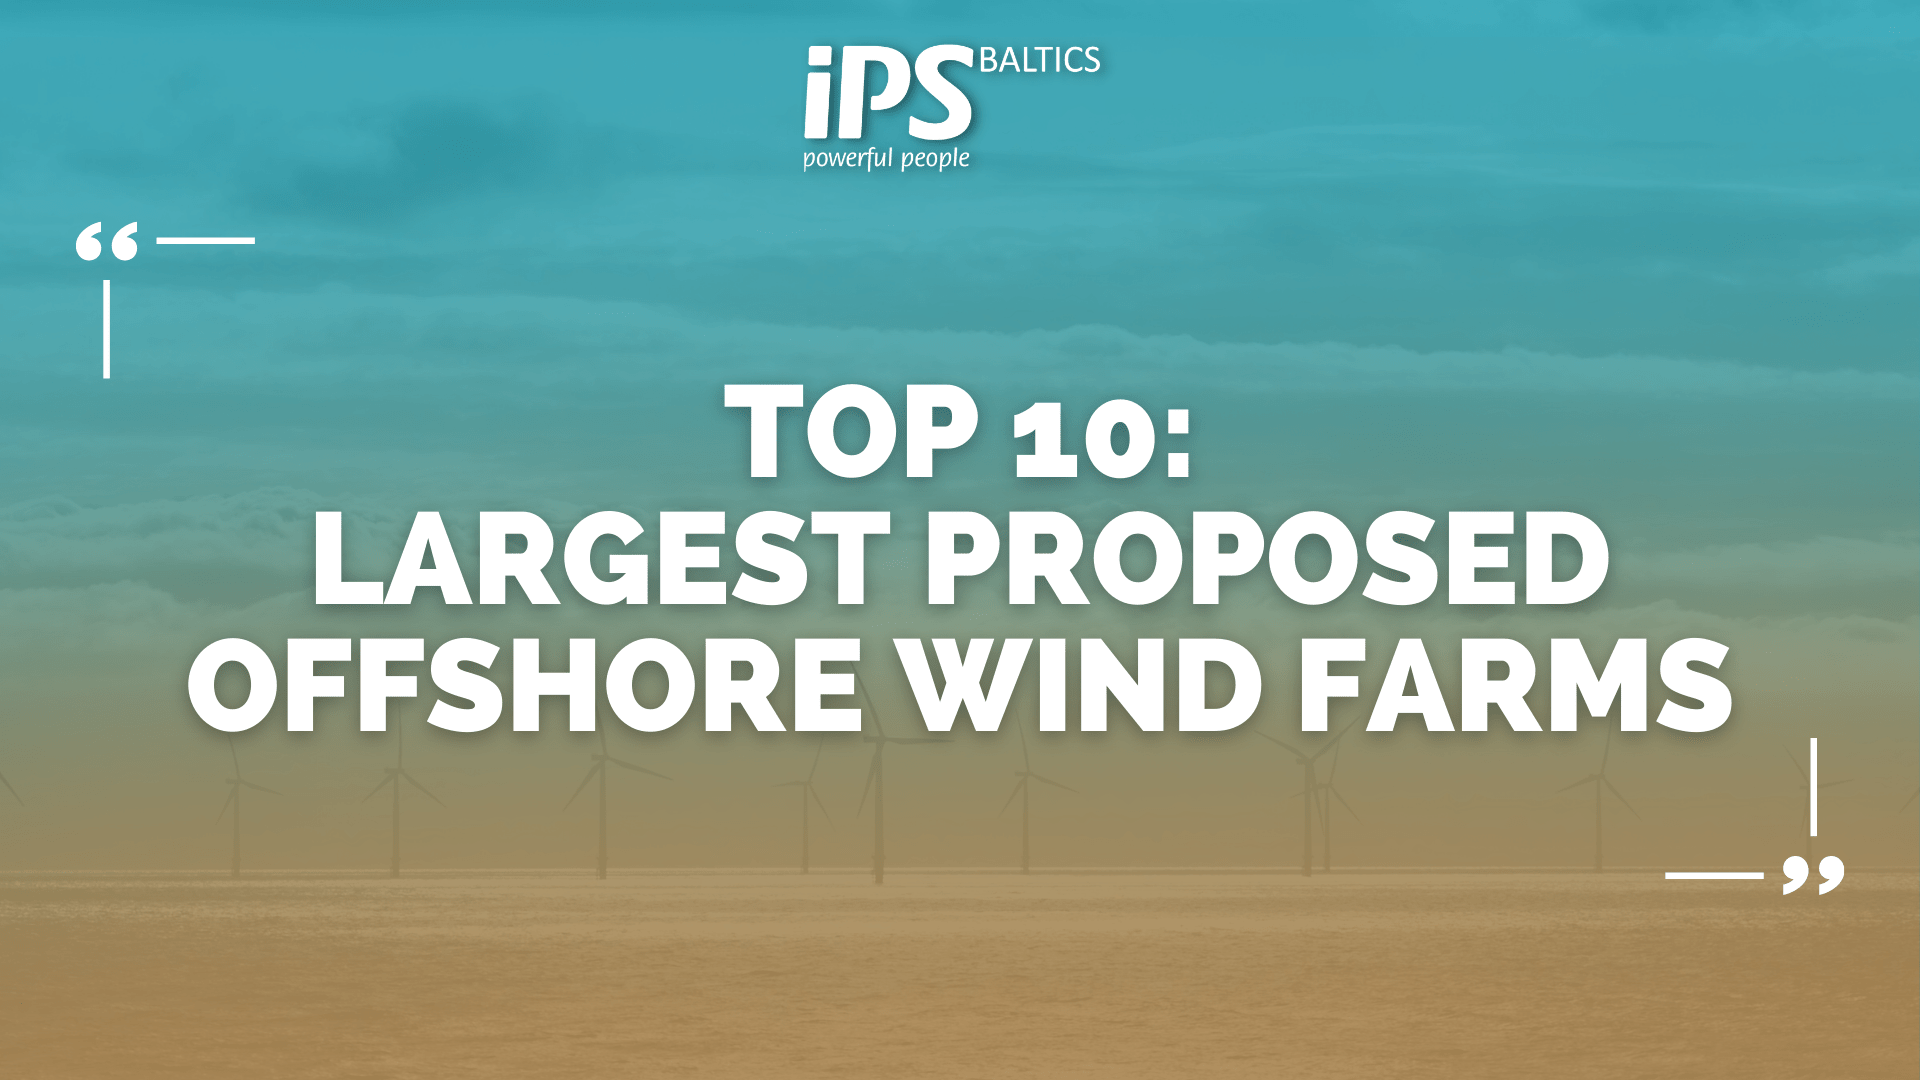 Top 10 largest proposed offshore wind farms